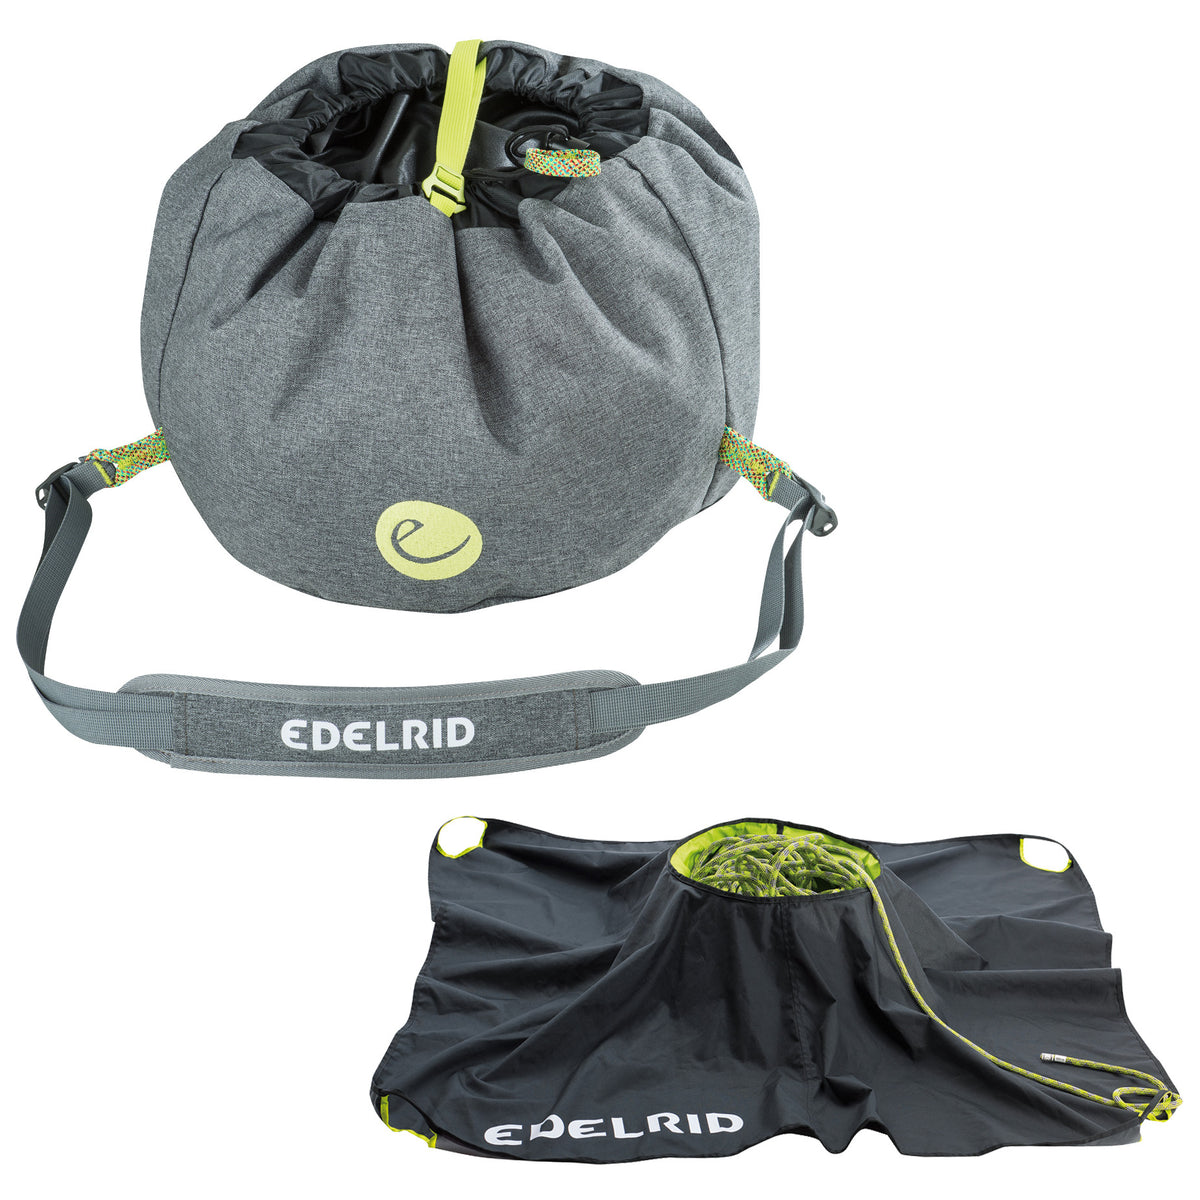 Edelrid Caddy II Rope Bag, shown closed and open in grey colour